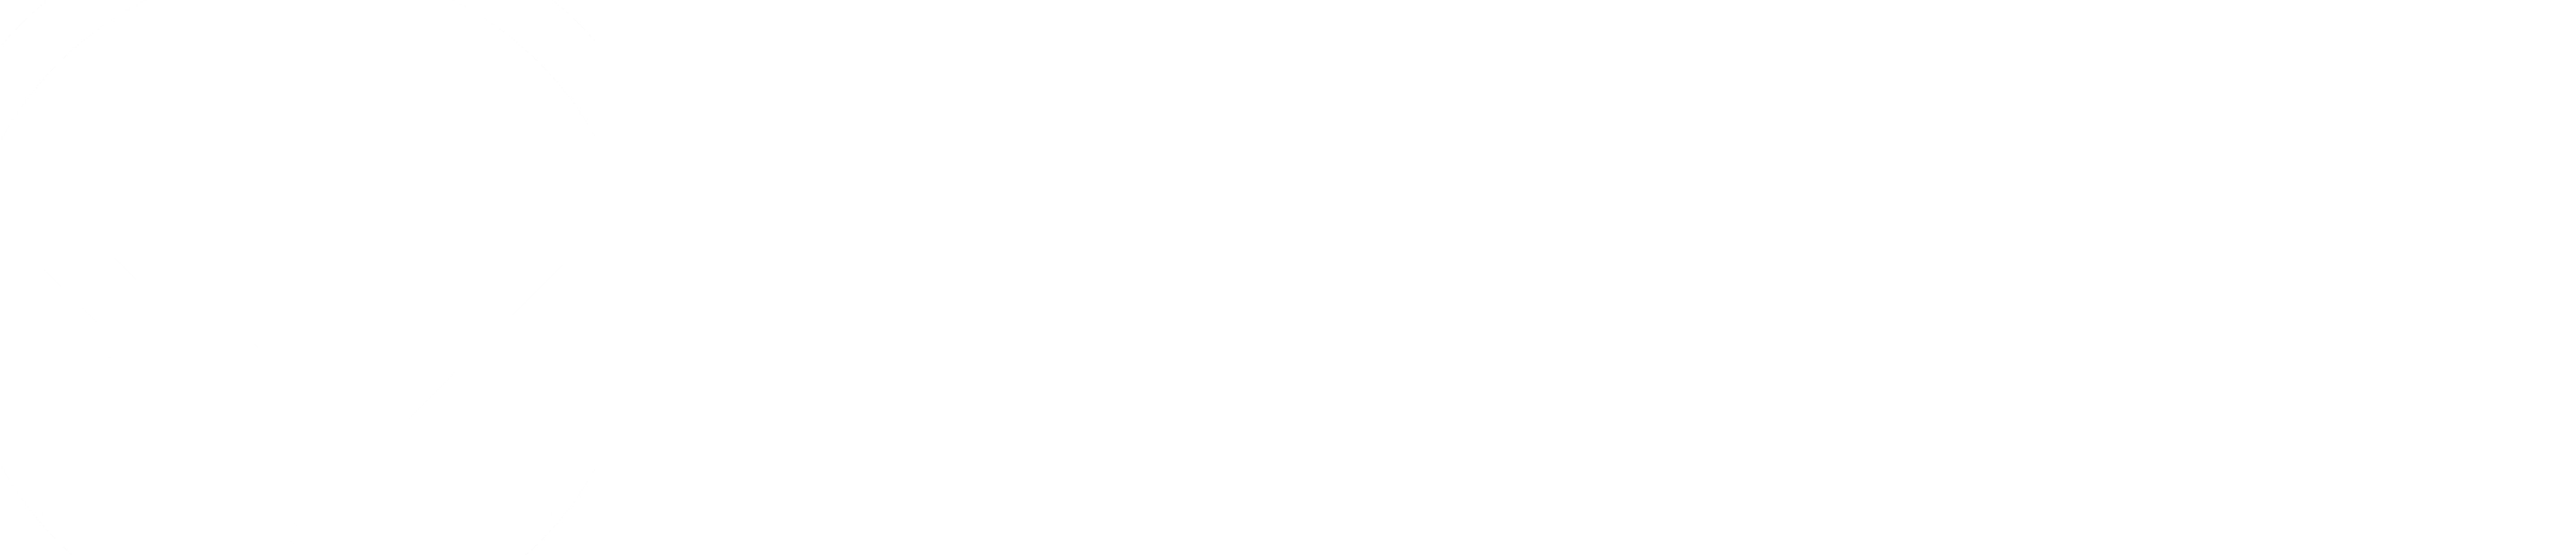 John J. Mercer Lodge | A.F. & A.M. of Nebraska